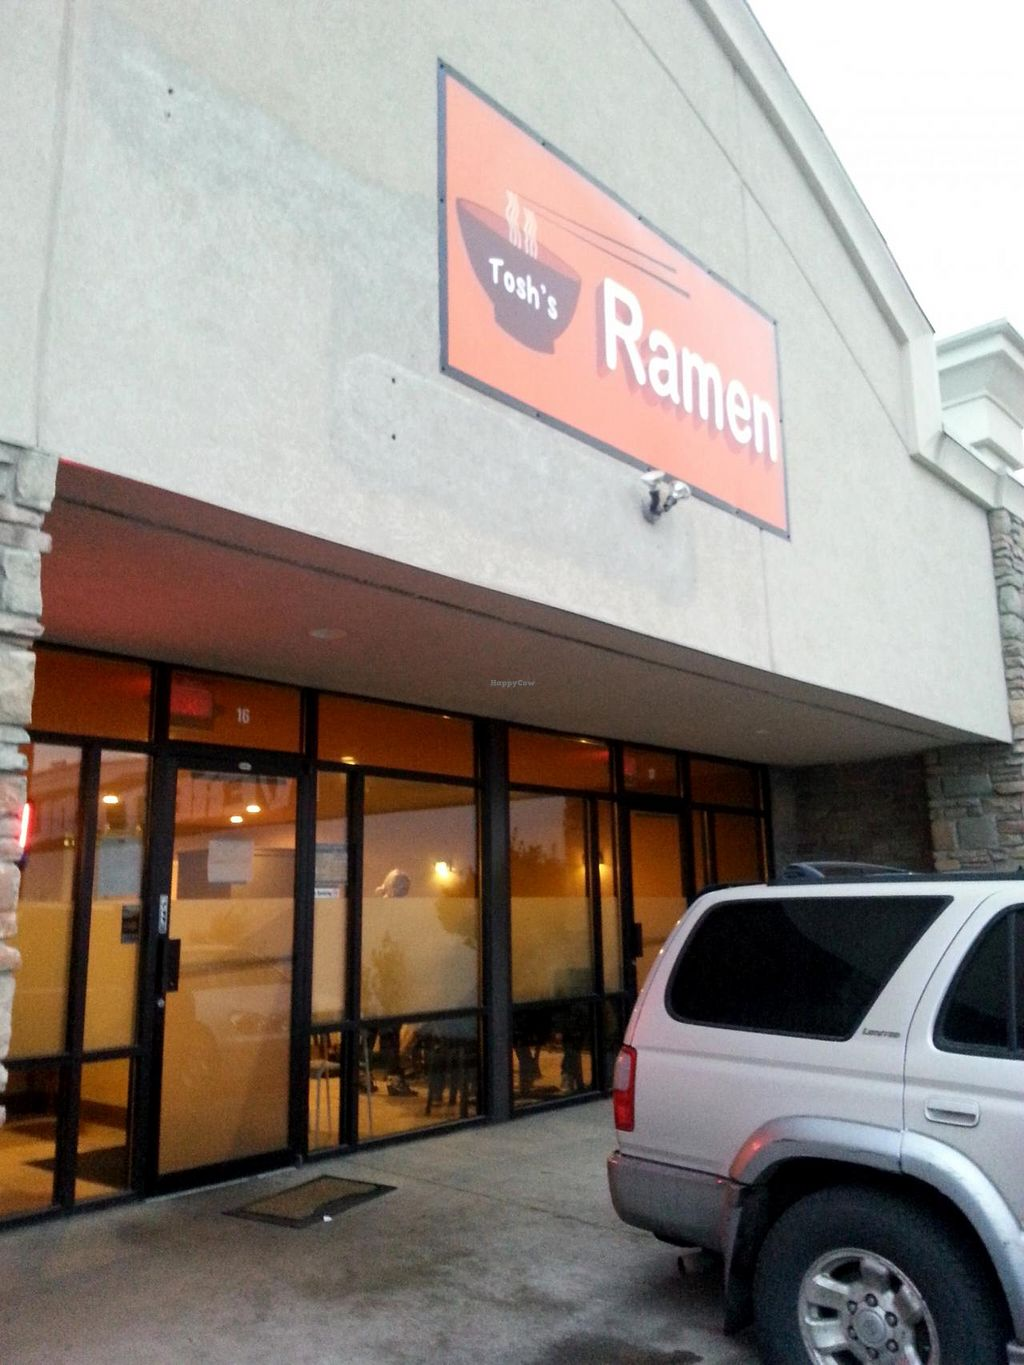 "Photo of Tosh's Ramen  by <a href=""/members/profile/Meggie%20and%20Ben"">Meggie and Ben</a> <br/>Front <br/> July 18, 2015  - <a href='/contact/abuse/image/60775/109836'>Report</a>"